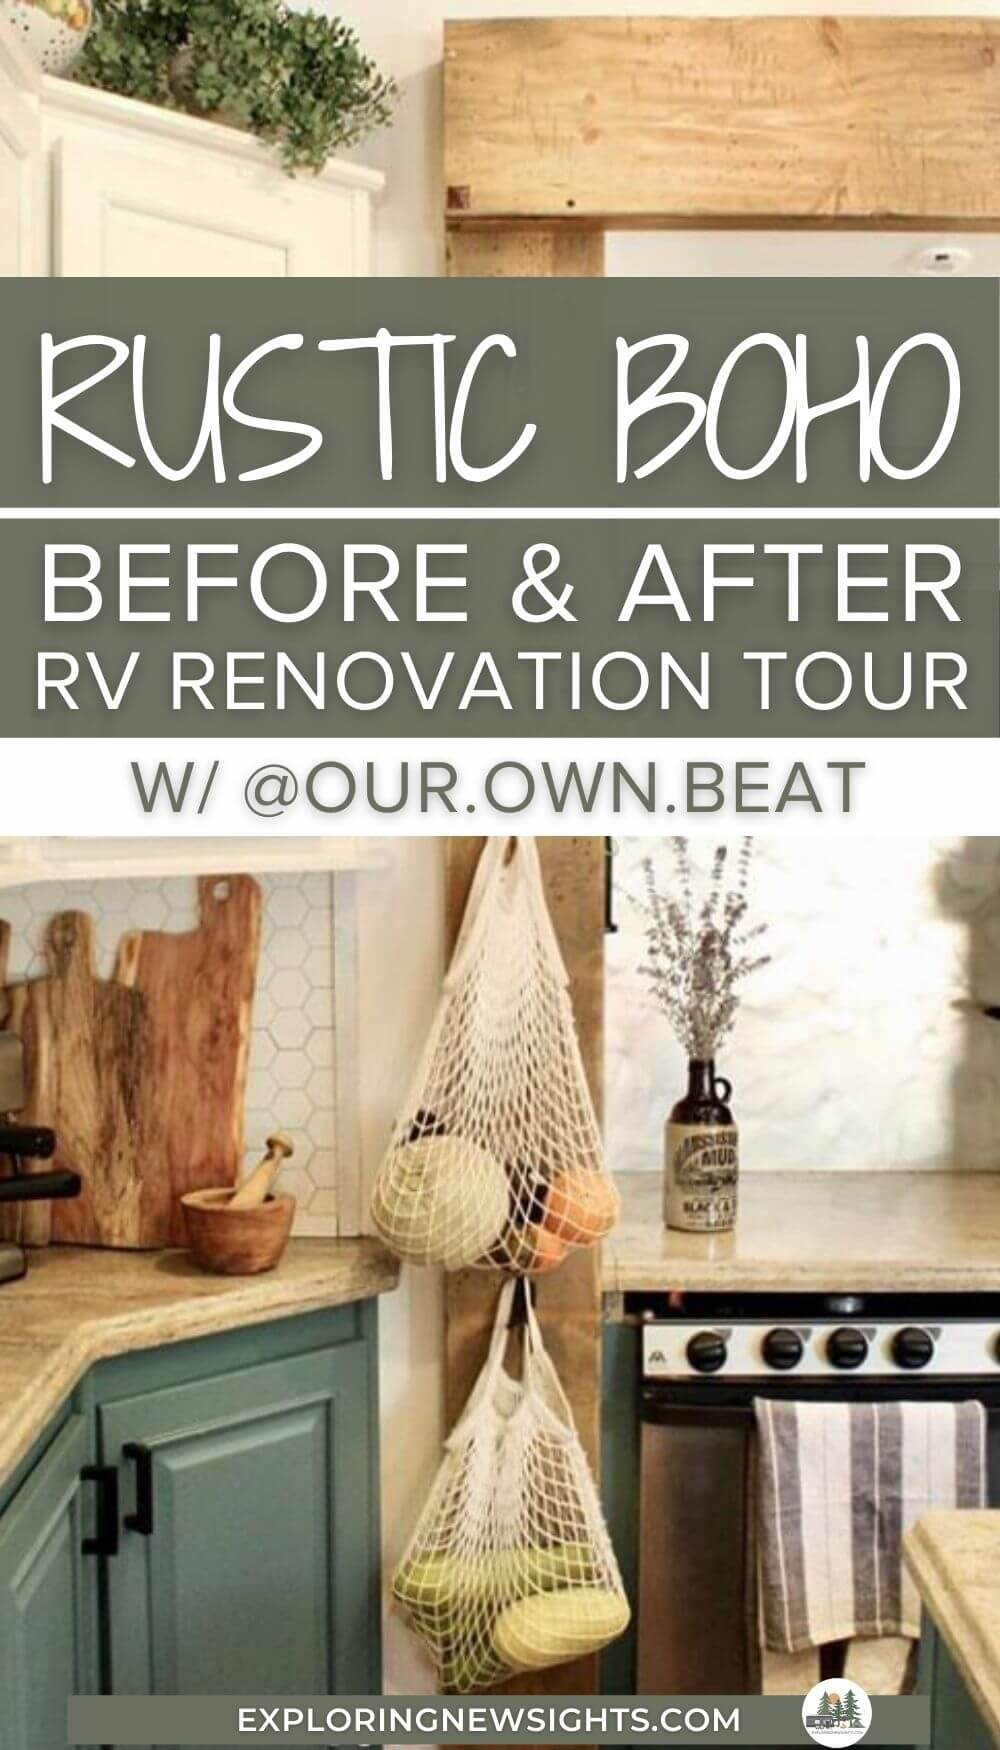 rustic bohemian RV renovation tour